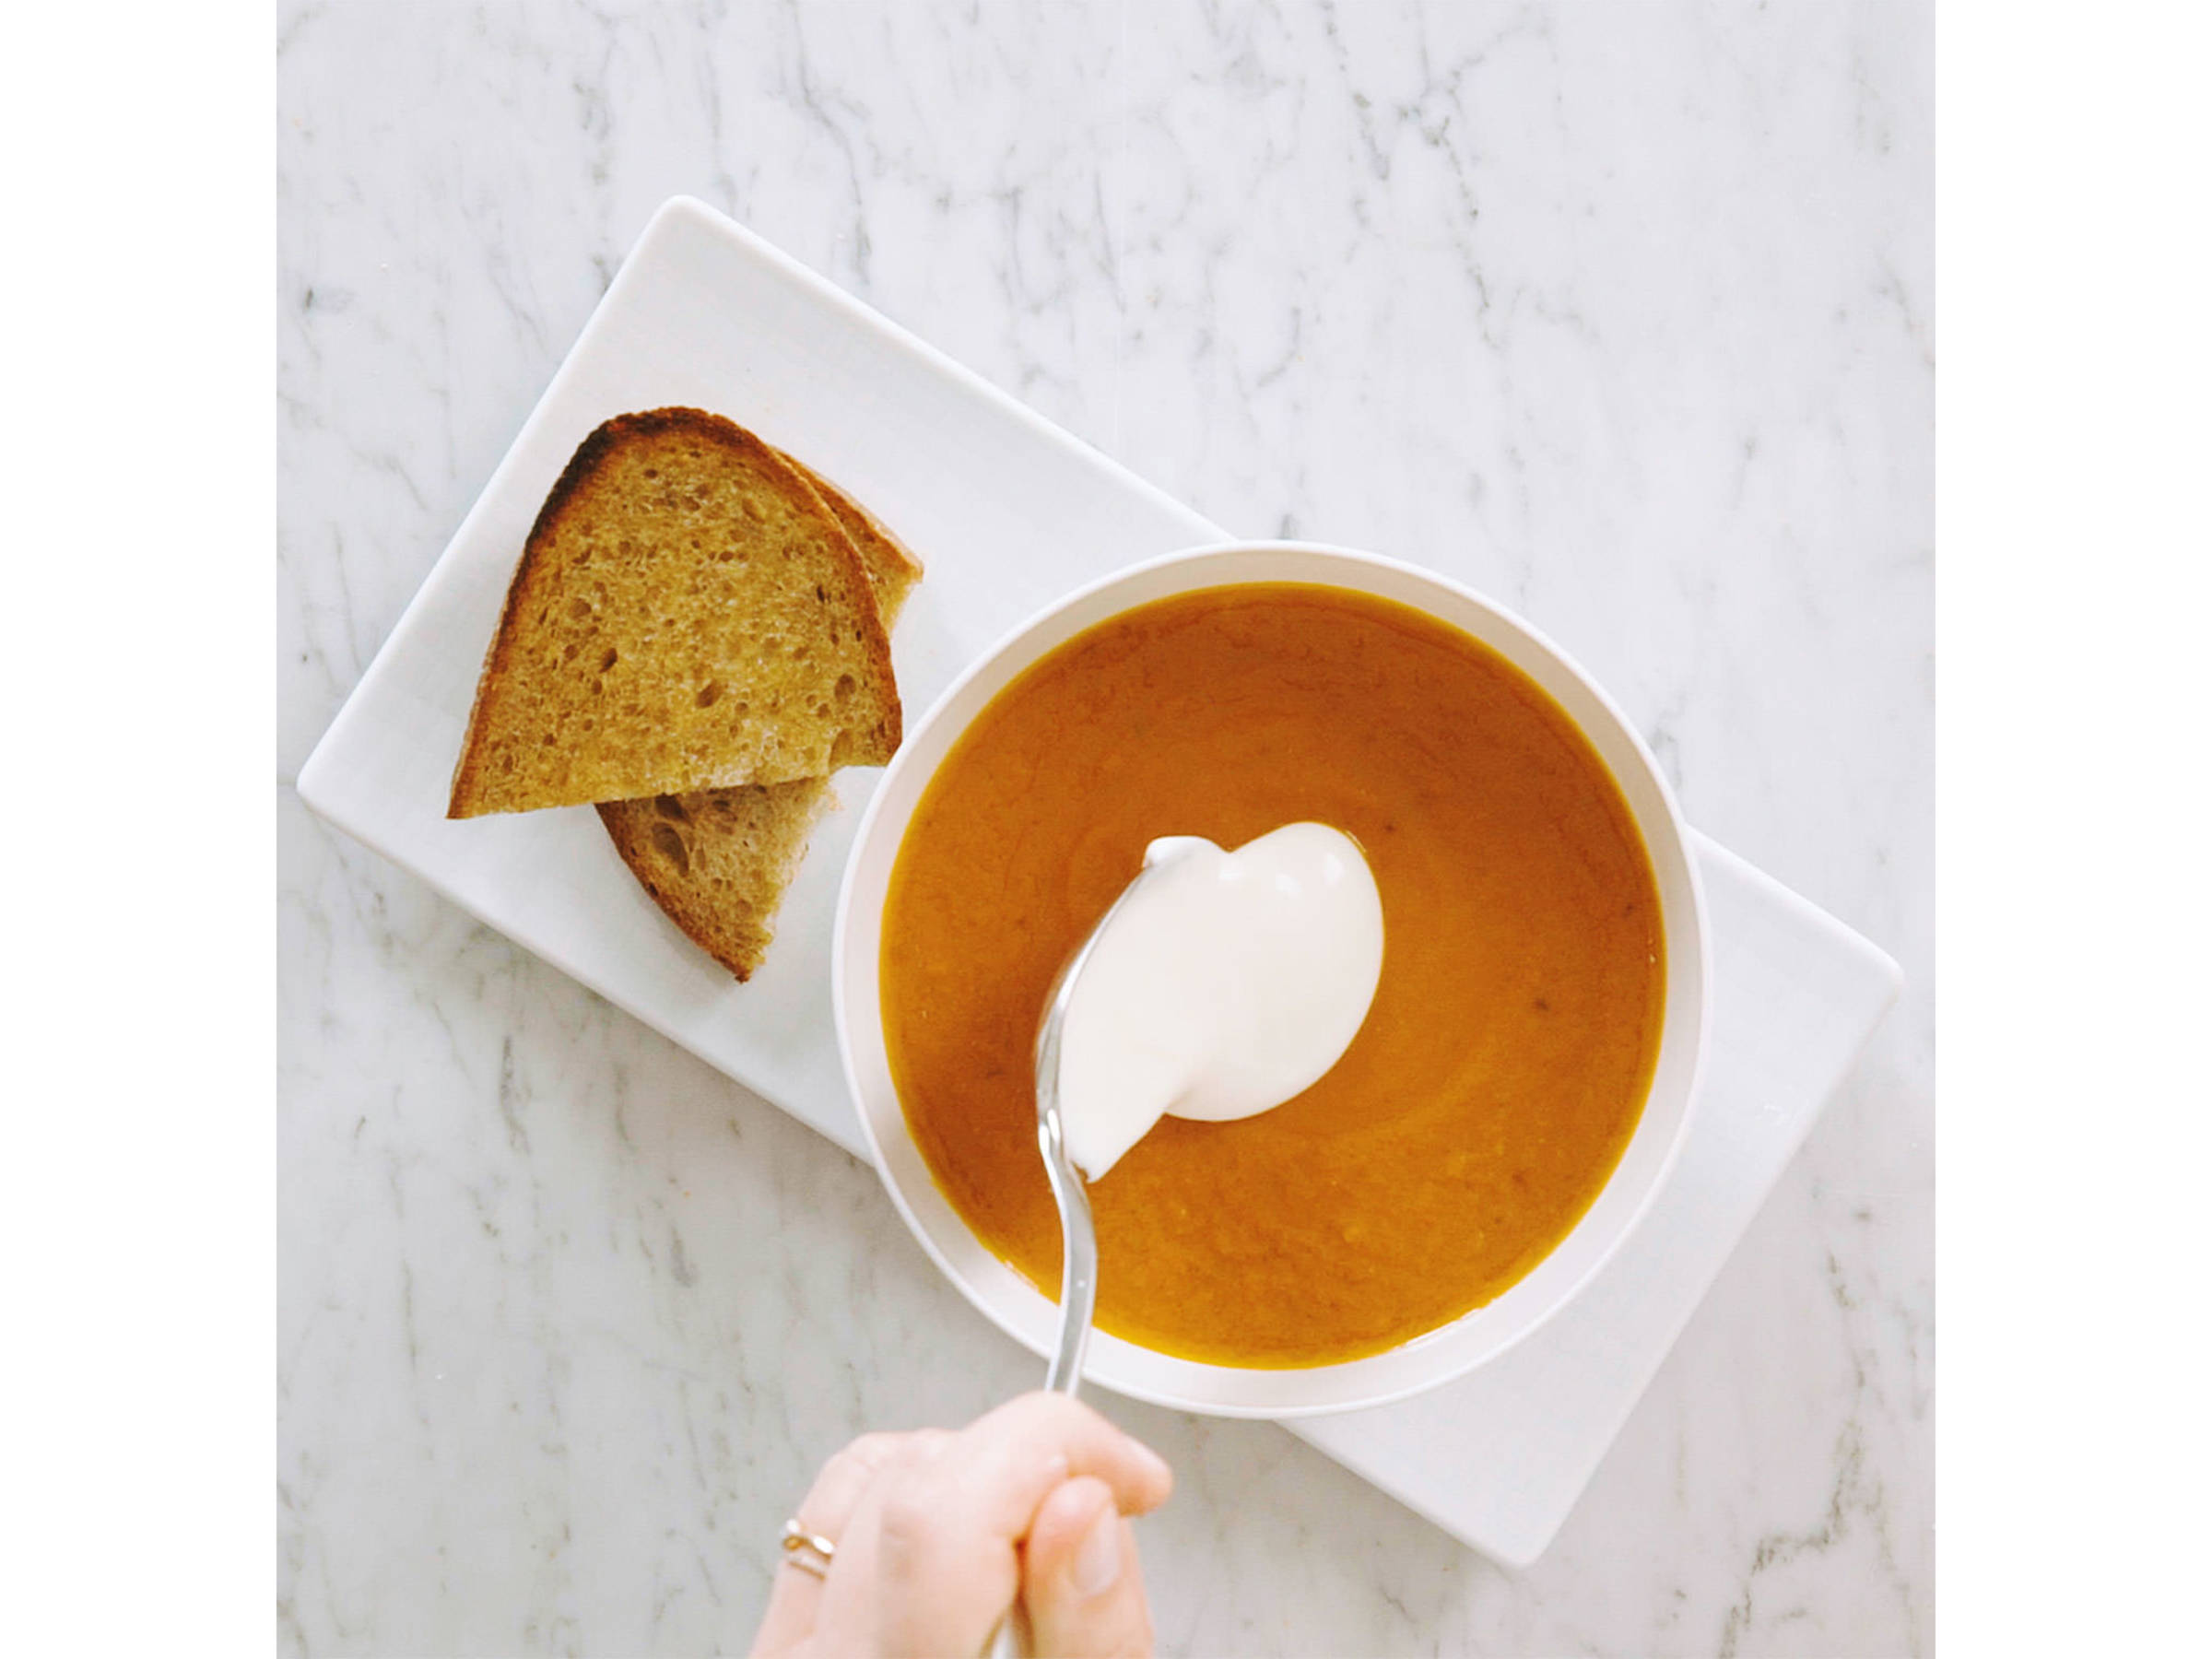 Transfer to a serving bowl and dollop with yogurt alternative. If you like, garnish with pumpkin seed oil. Serve with slices of whole wheat bread. Enjoy!